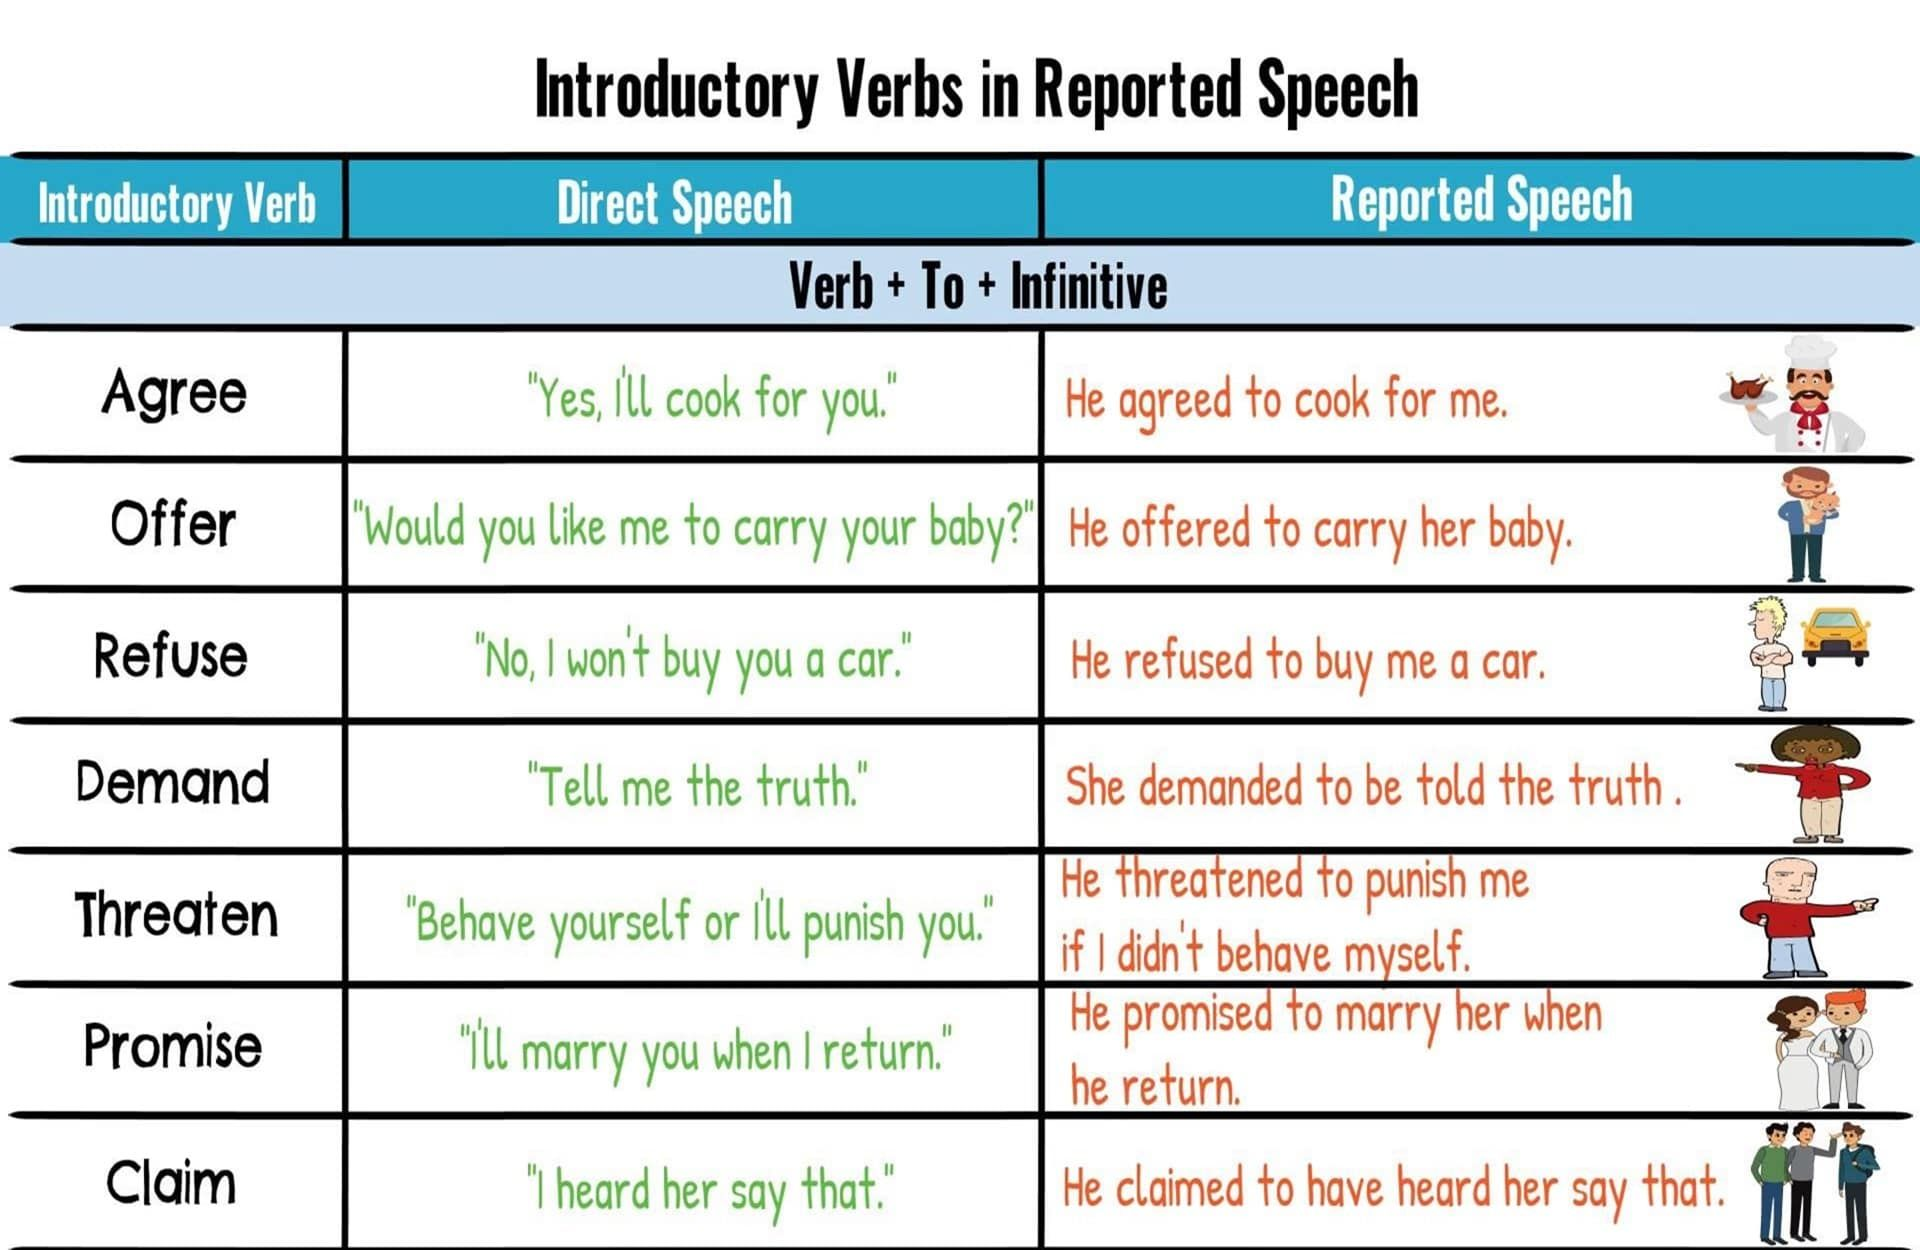 Useful Introductory Verbs In Reported Speech